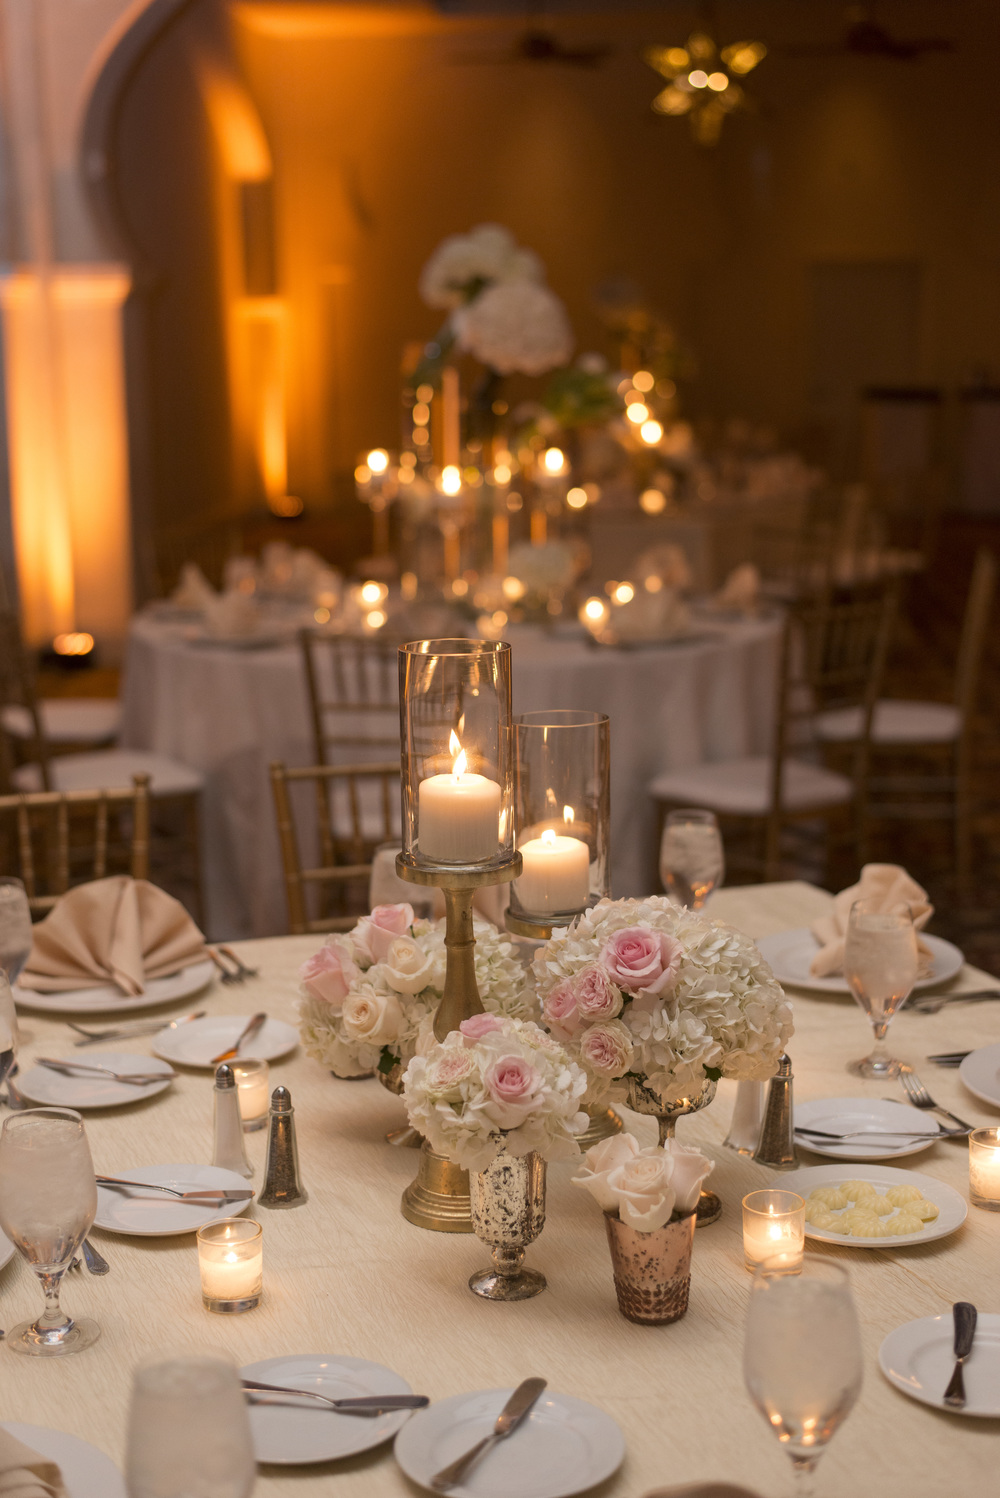 Low pink and white centerpieces with candles.  Vendor Credits: Las Vegas Wedding Planner:  Andrea Eppolito Events  | Venue: The Westin Lake Las Vegas  |  Floral & Decor:  Flora Couture |  Photography:  Altf Photography  |  Videography: Something New Films  | Wedding Cake:  Peridot Sweets  |  Beauty by:  Make Up in the 702  |  Wedding Gown: P'Nina Tornai  |  Veil: Kleinfeld New York  |  Shoes:  Christian Louboutin  |  Tuxedo:  Men's Warehouse